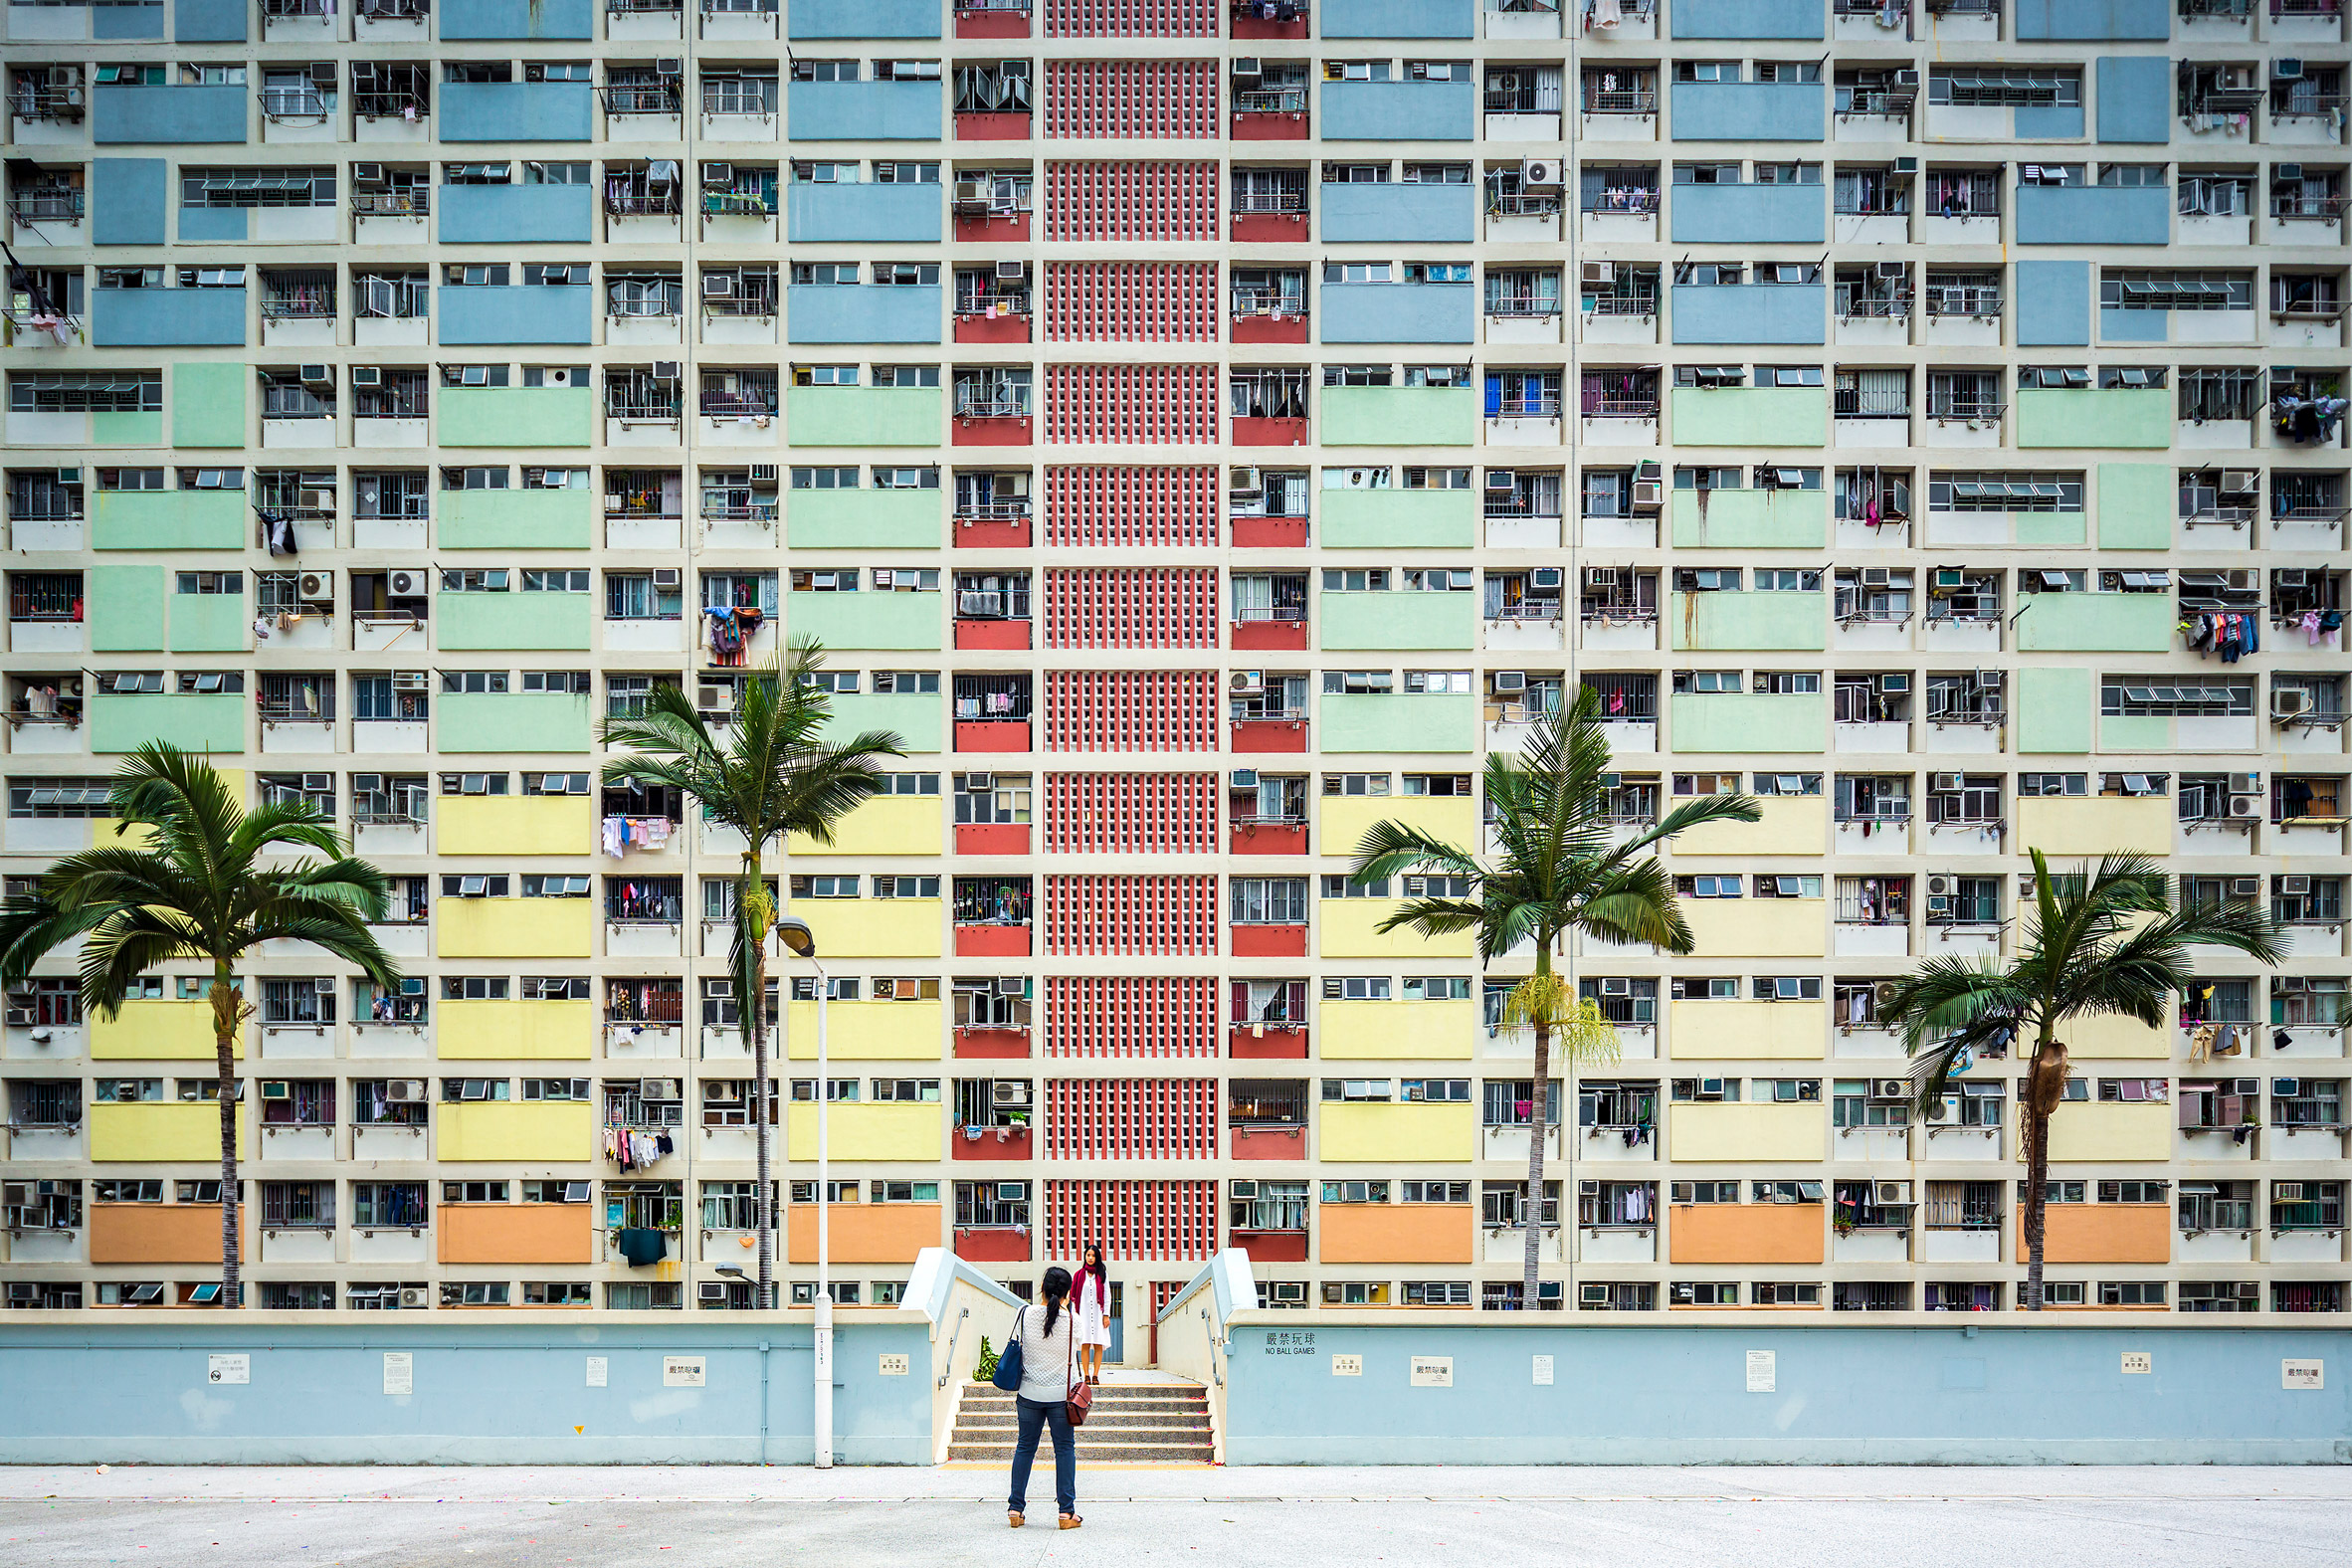 Shortlist unveiled for best architecture photograph of 2017